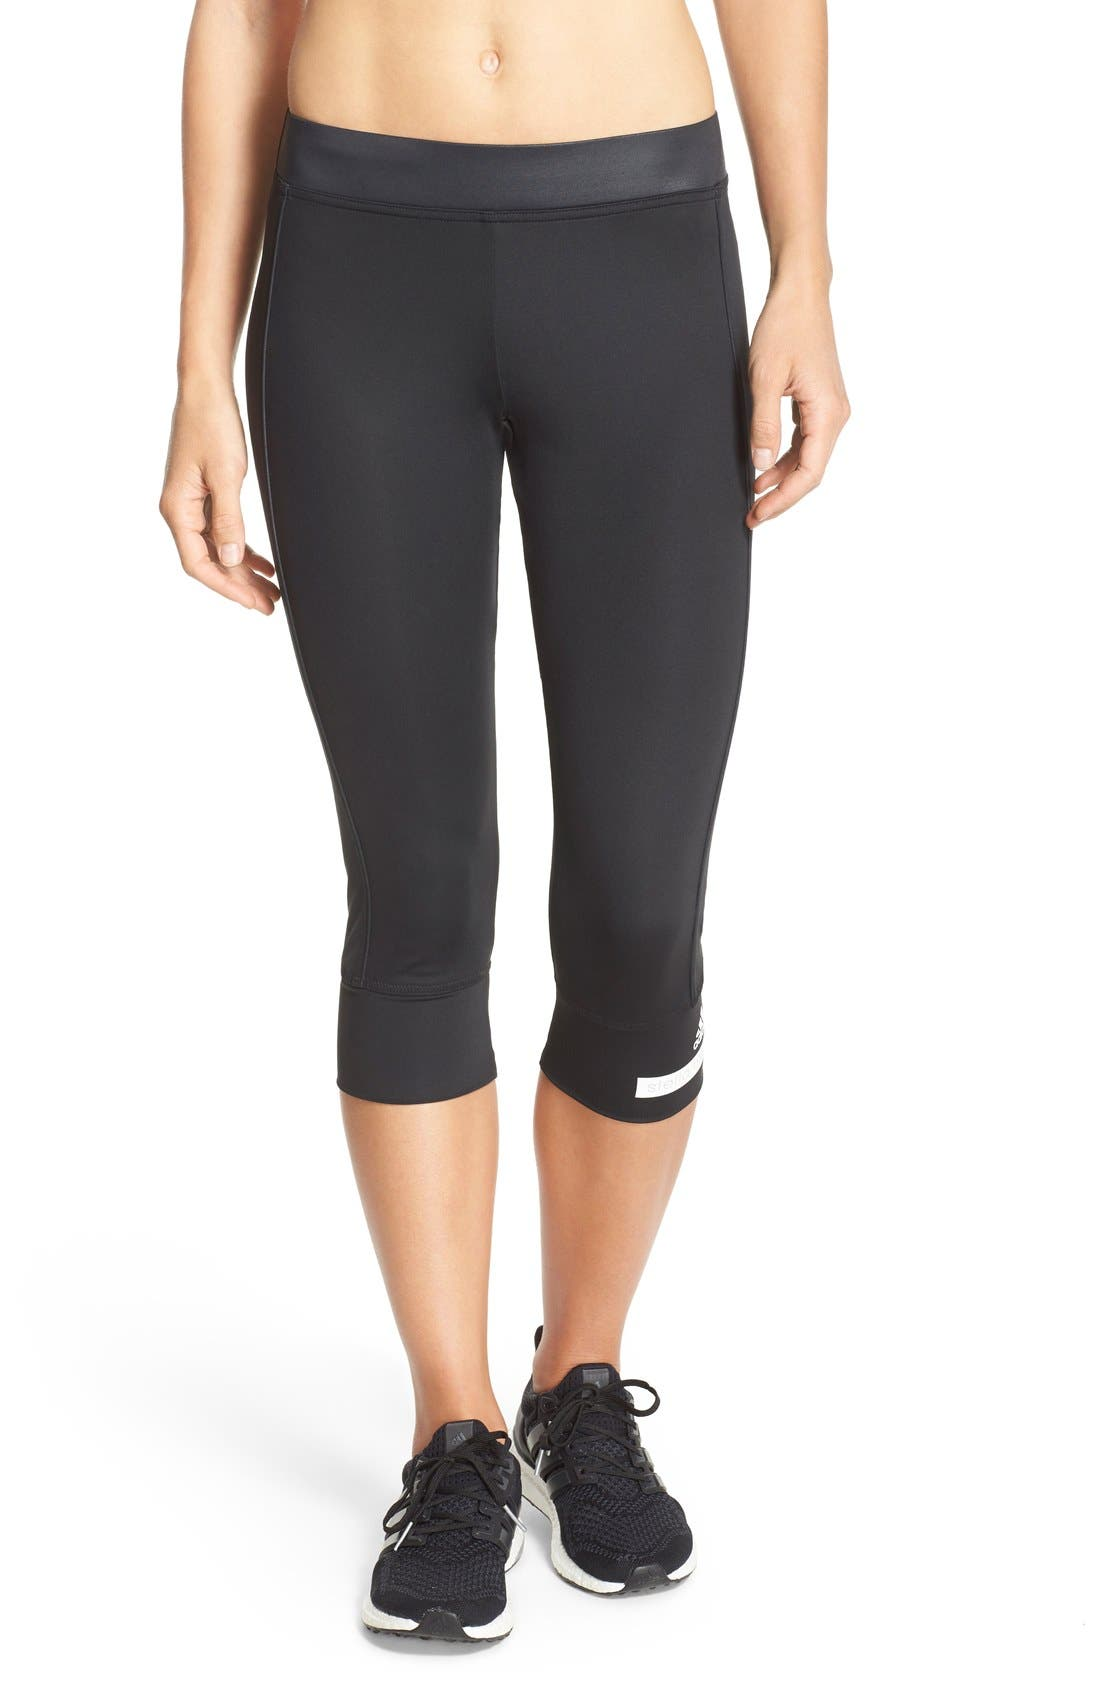 Main Image - adidas by Stella McCartney 'The Performance' Climalite® Three-Quarter Tights